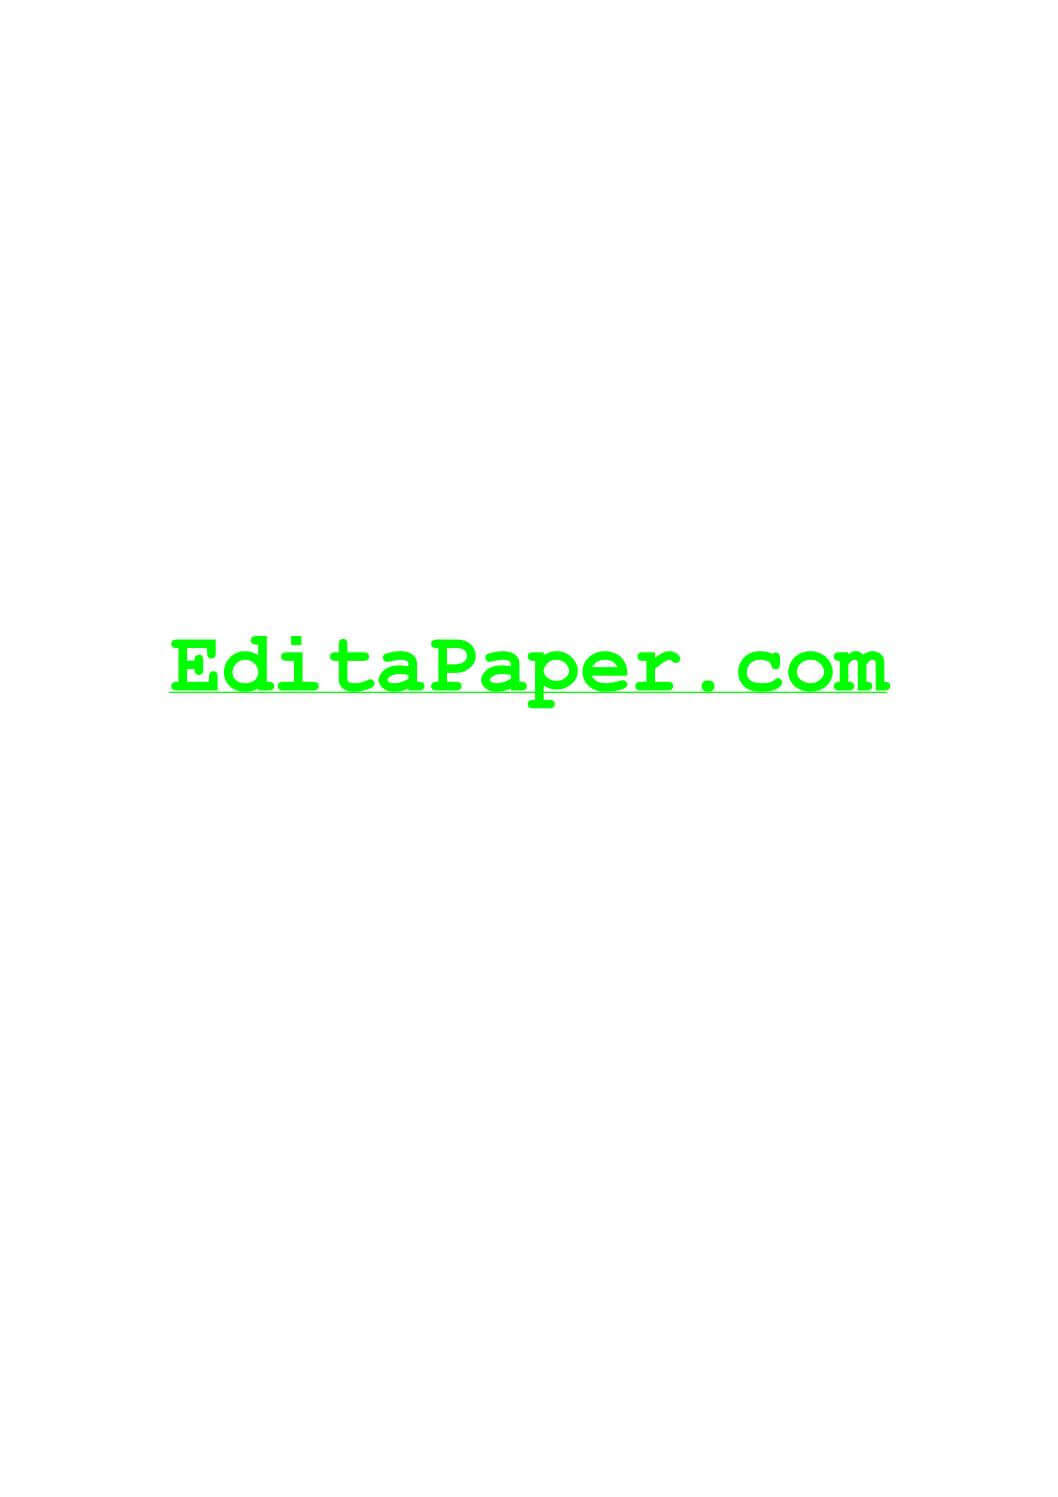 Apa Format Essay Template Word 2010Courtneysxkq – Issuu Within Apa Template For Word 2010